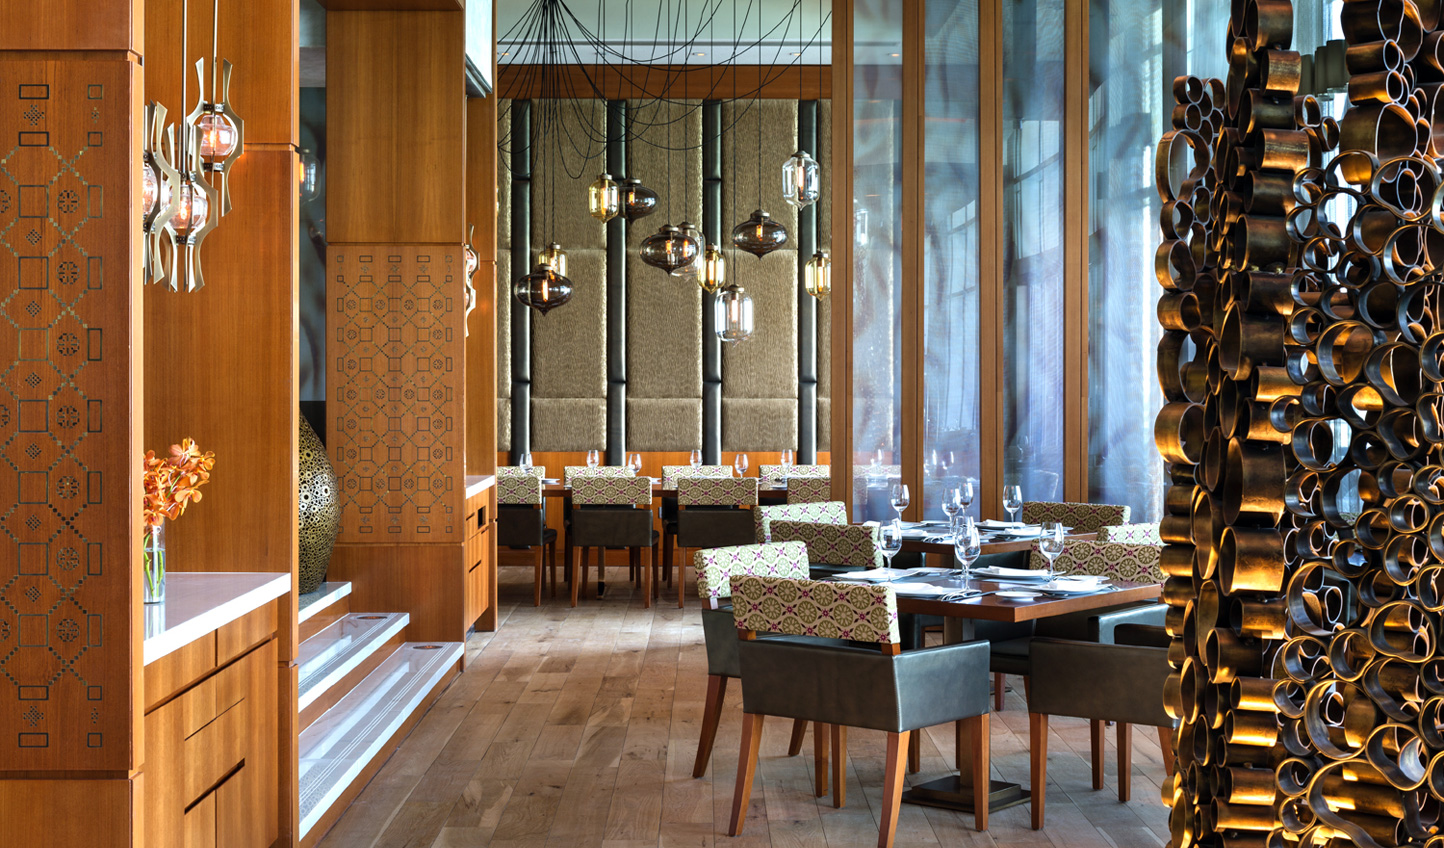 Sambusek captures the essence of Lebanese flair with fresh ingredients and stylish surroundings